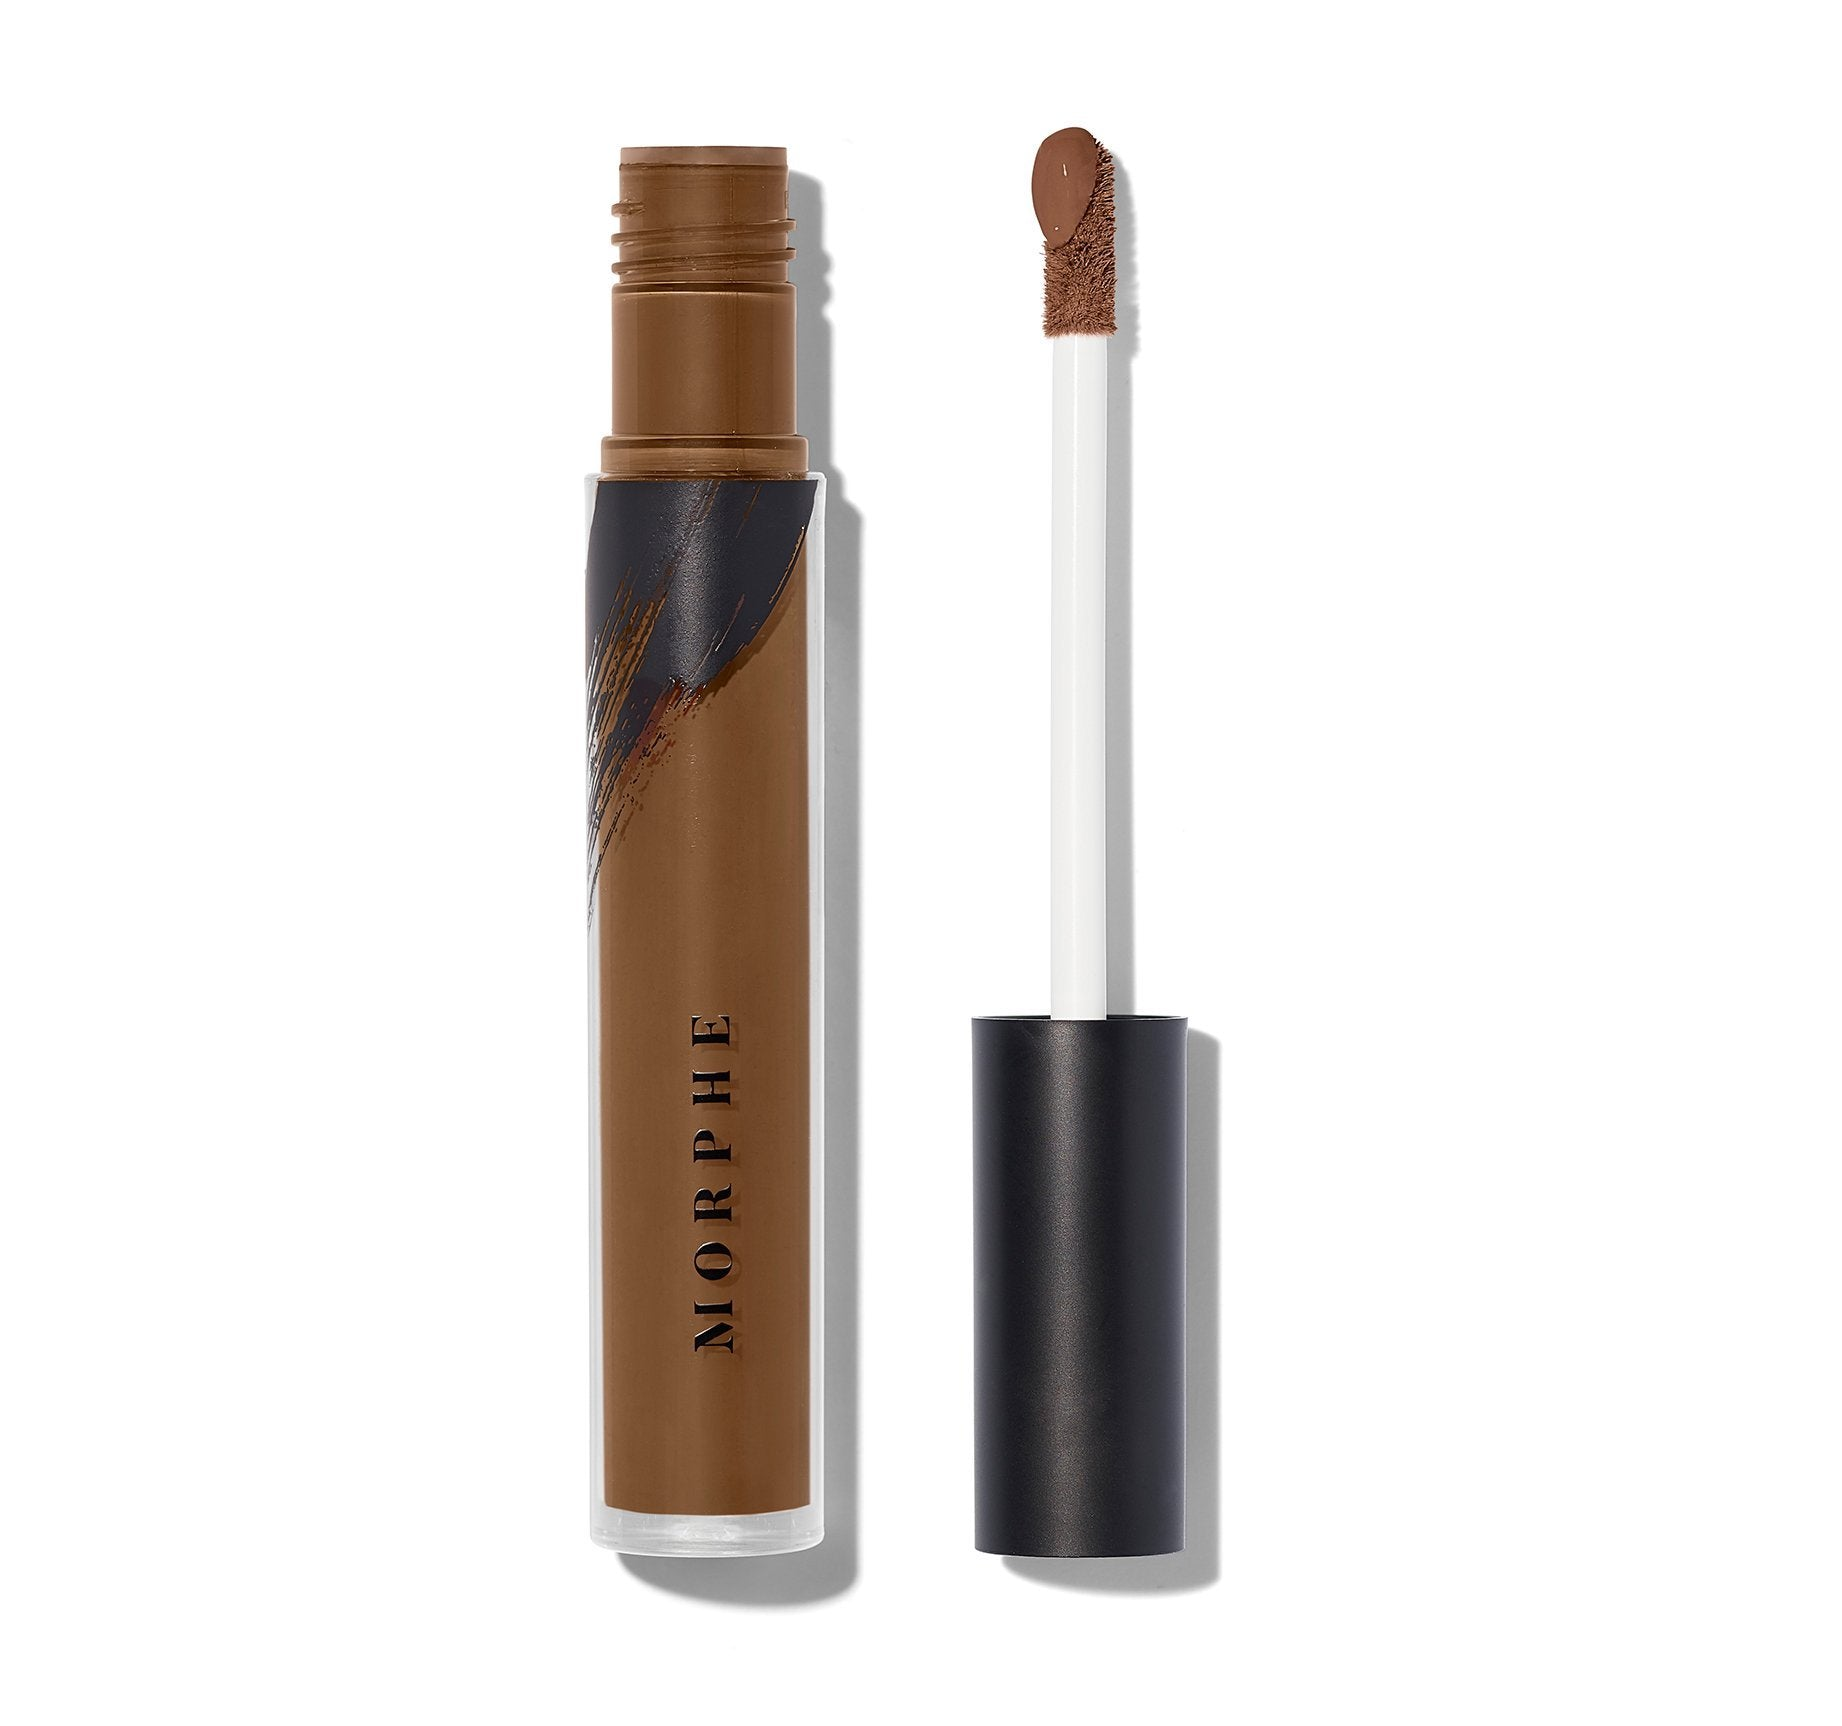 FLUIDITY FULL-COVERAGE CONCEALER - C5.15, view larger image